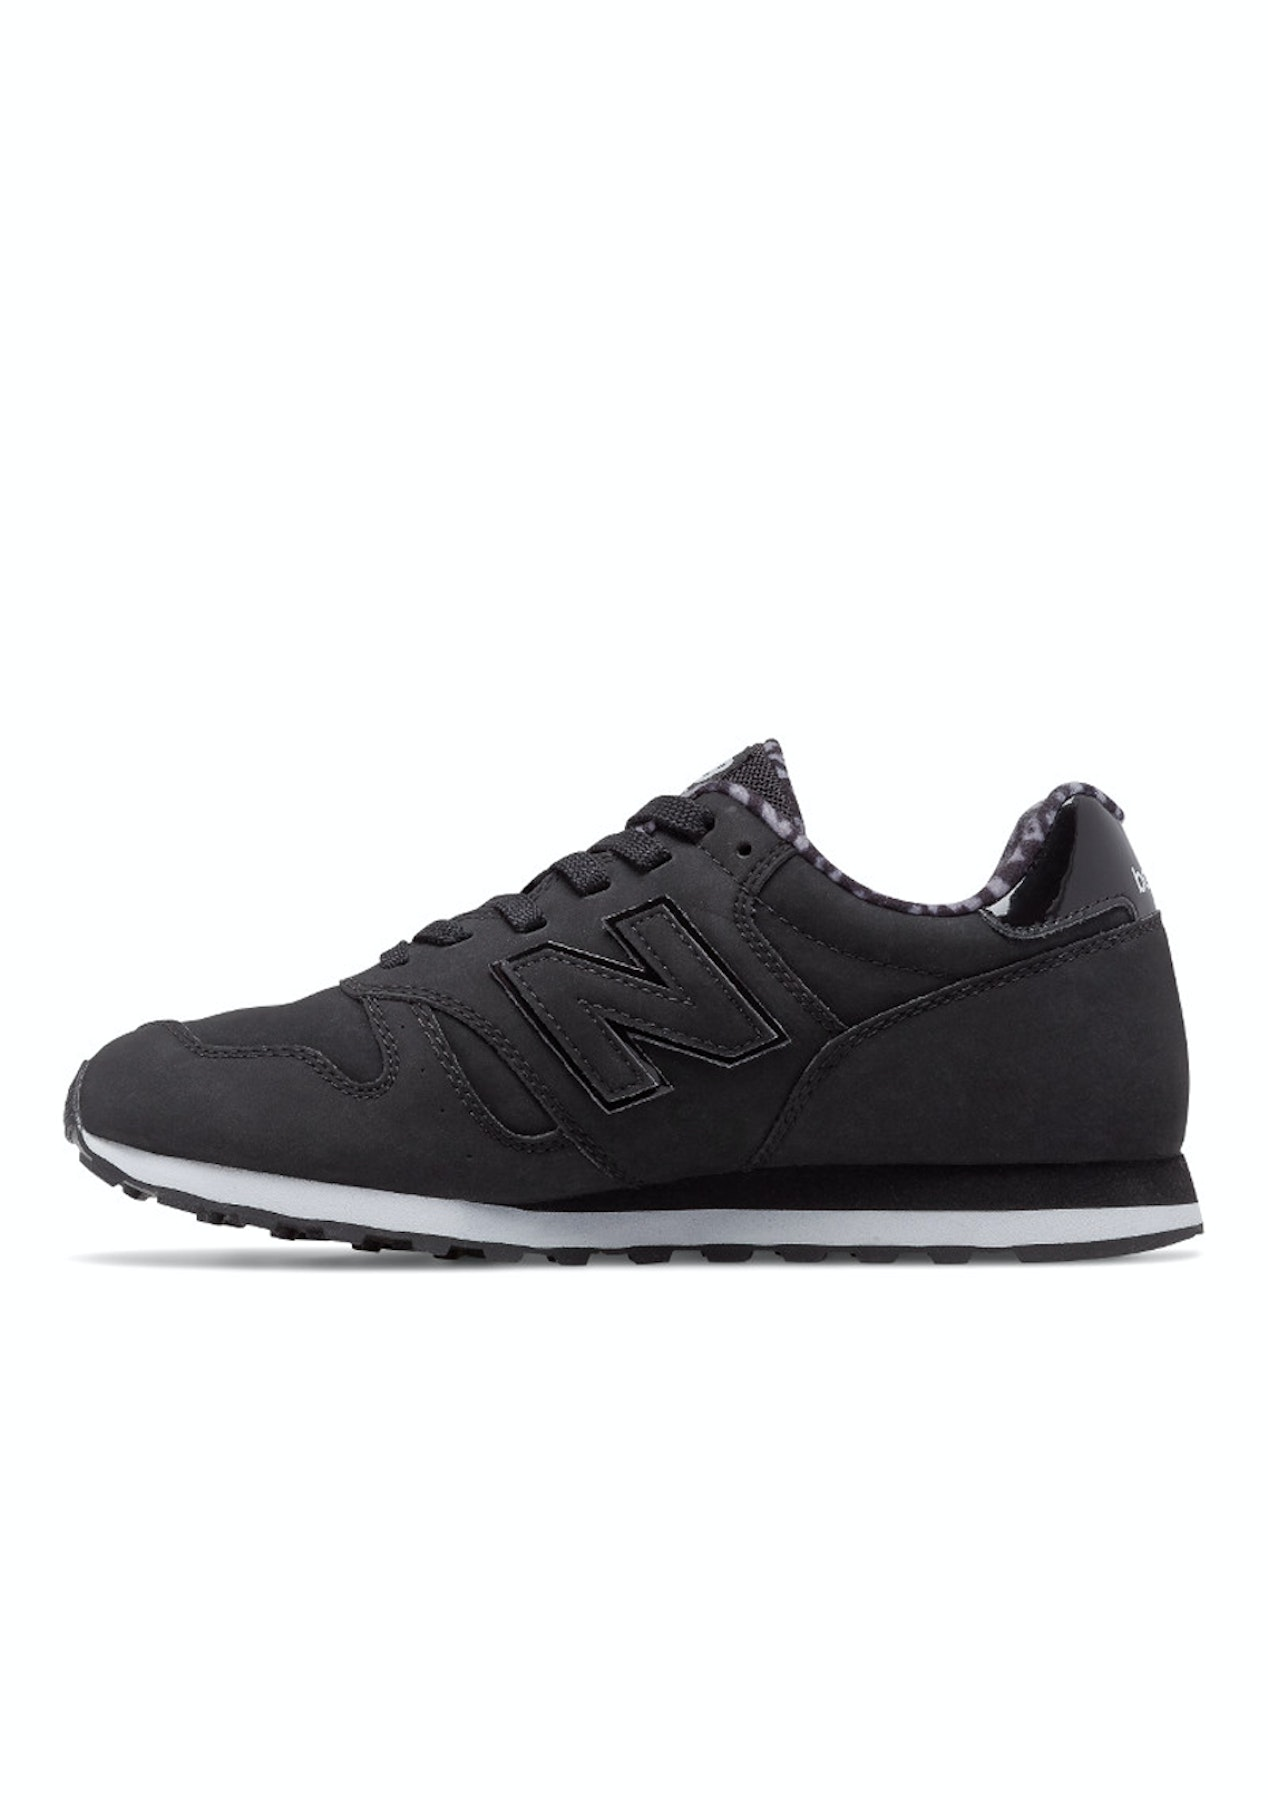 14dc4ab17400f New Balance - Womens 373 - Black / White - Street Shoes + Slides - Onceit